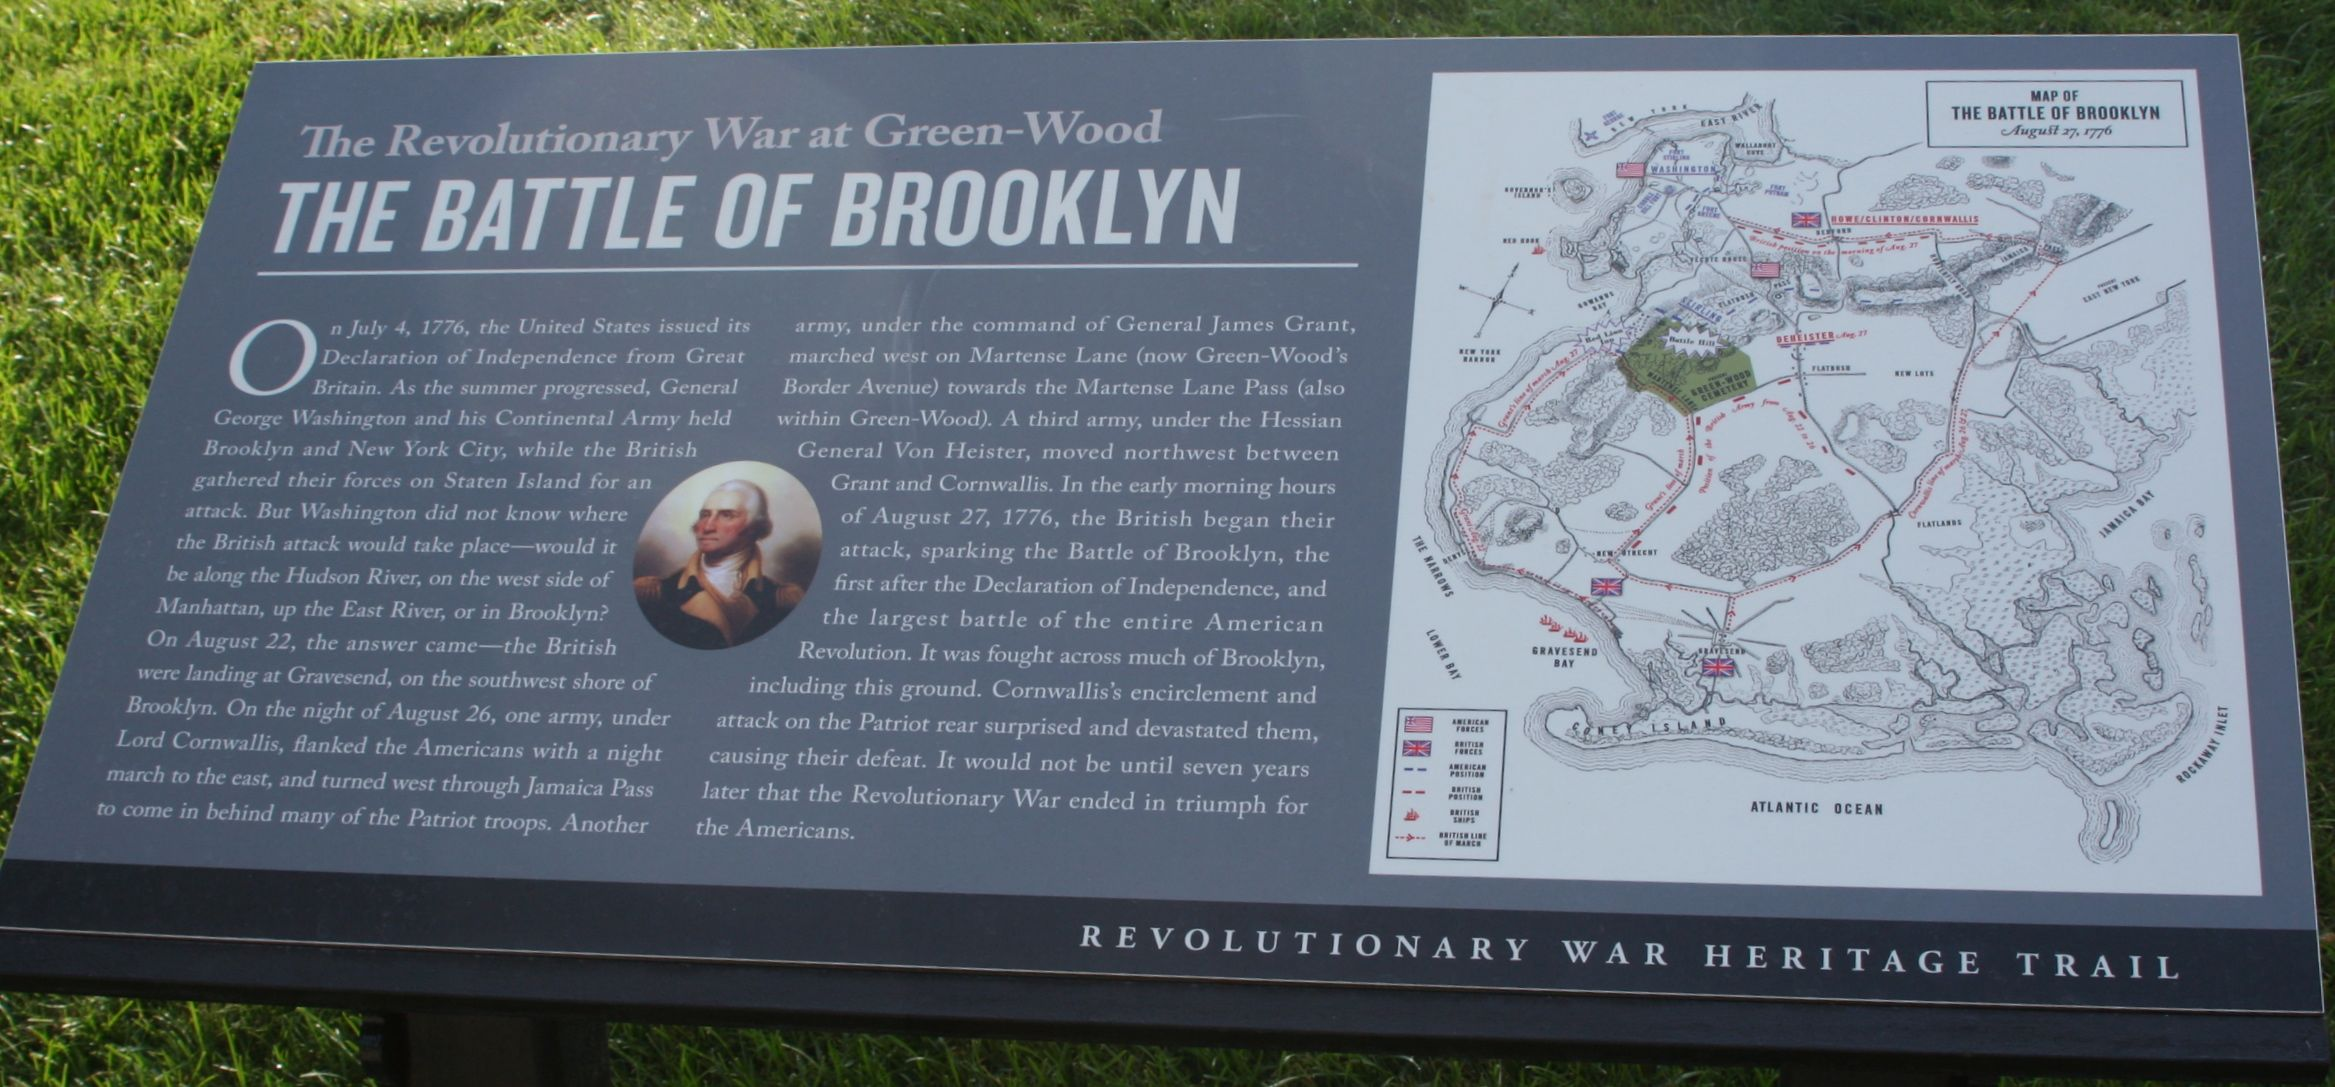 Commemorating the Battle of Brooklyn | Green-Wood on